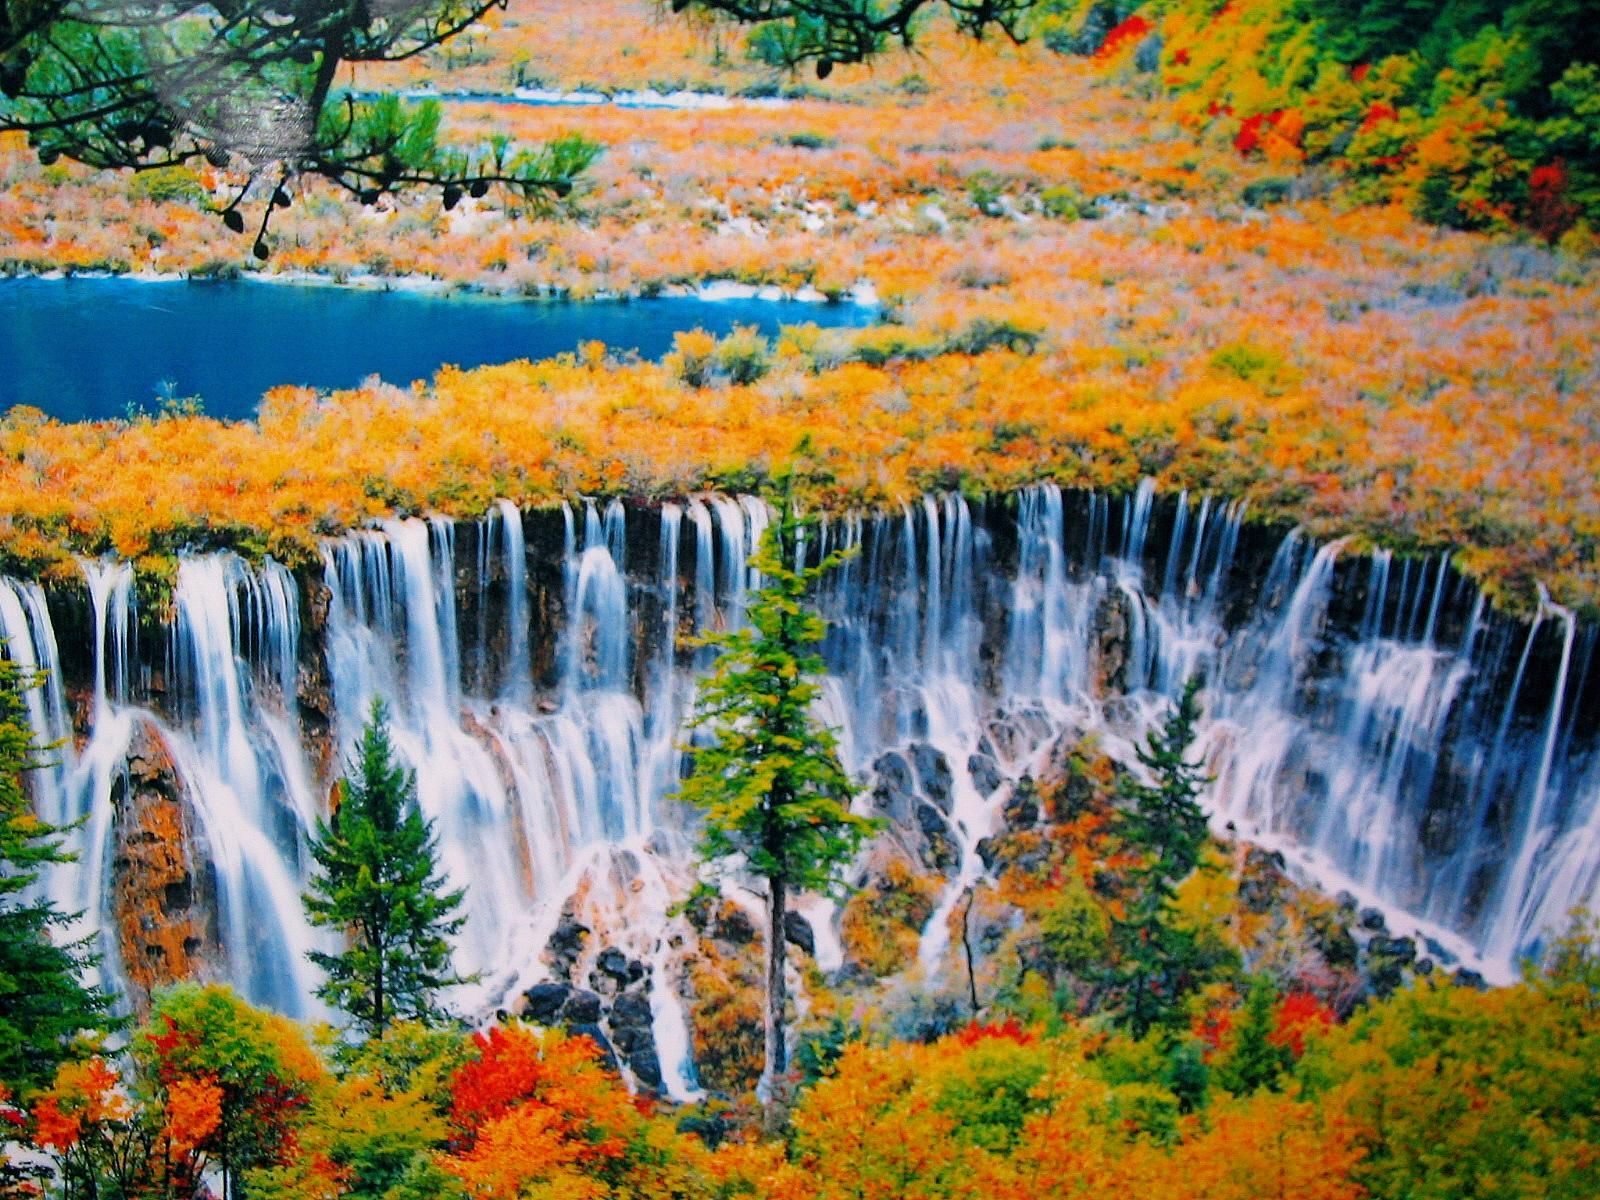 Nuorilang Waterfall @ Jiuzhaigou National Park, China